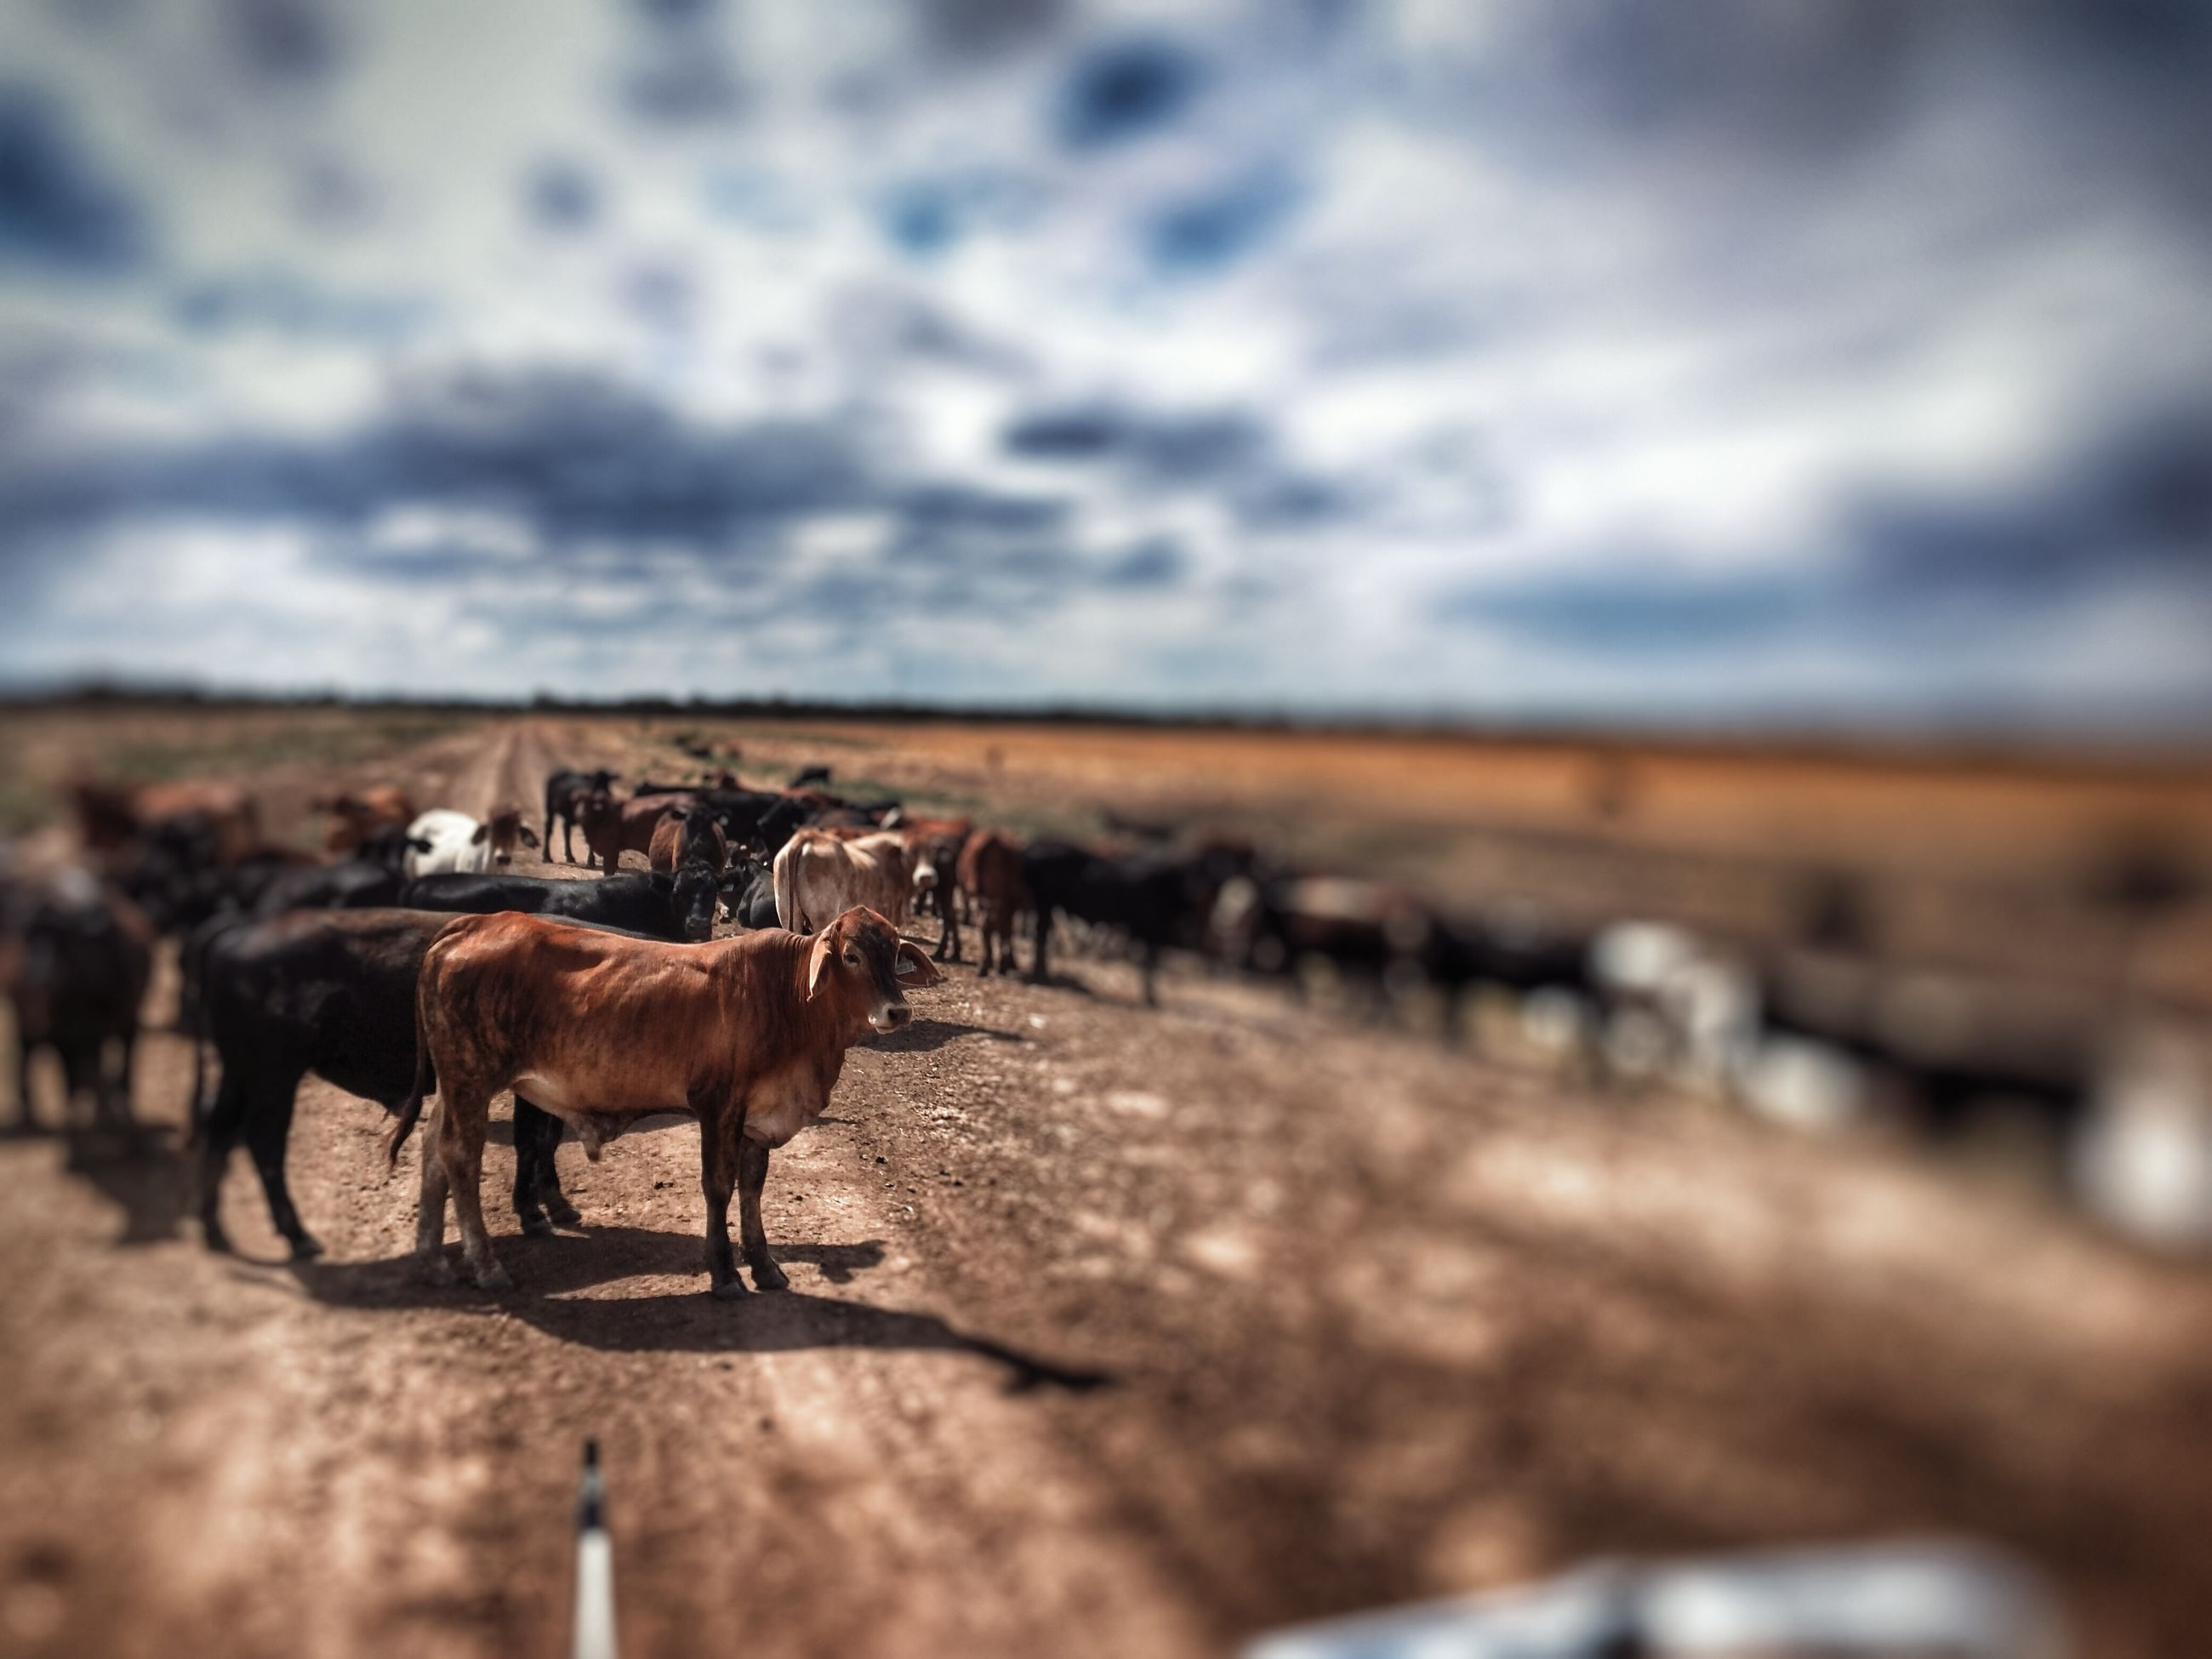 animal themes, domestic animals, mammal, livestock, sky, horse, cloud - sky, working animal, one animal, herbivorous, cloudy, field, cloud, standing, two animals, landscape, nature, cow, day, domestic cattle